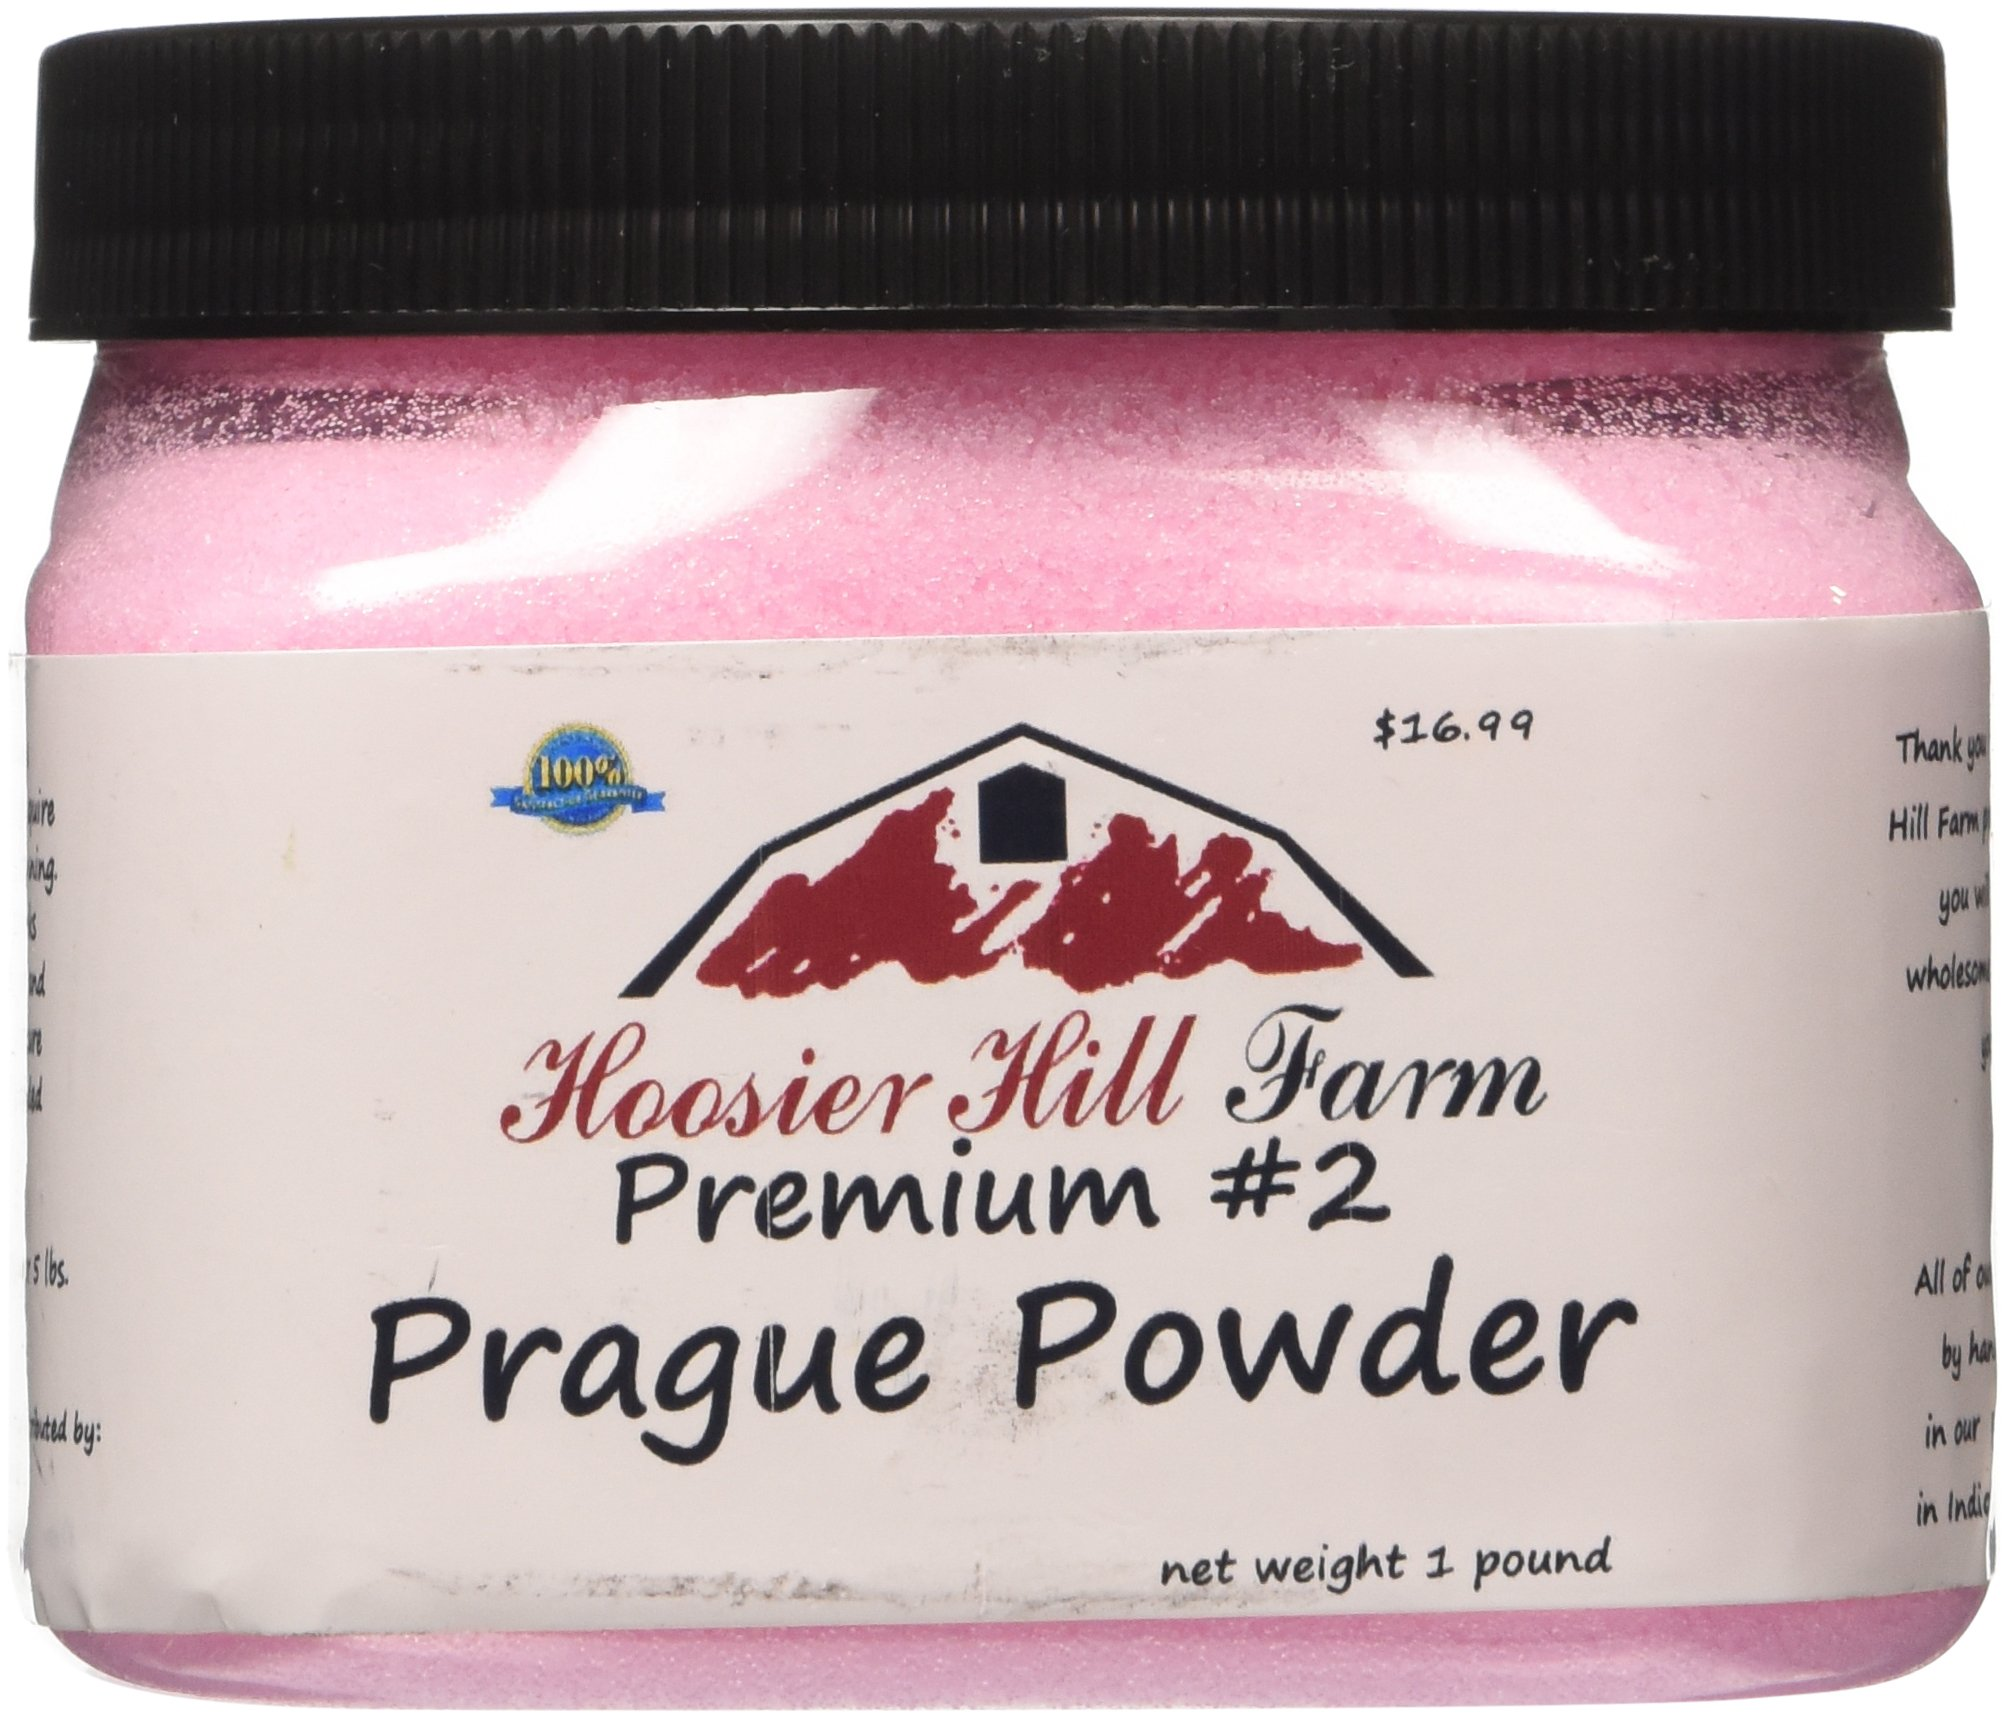 Hoosier Hill Farm Prague Powder No.2 (#2) Pink Curing Salt, 1 lb.